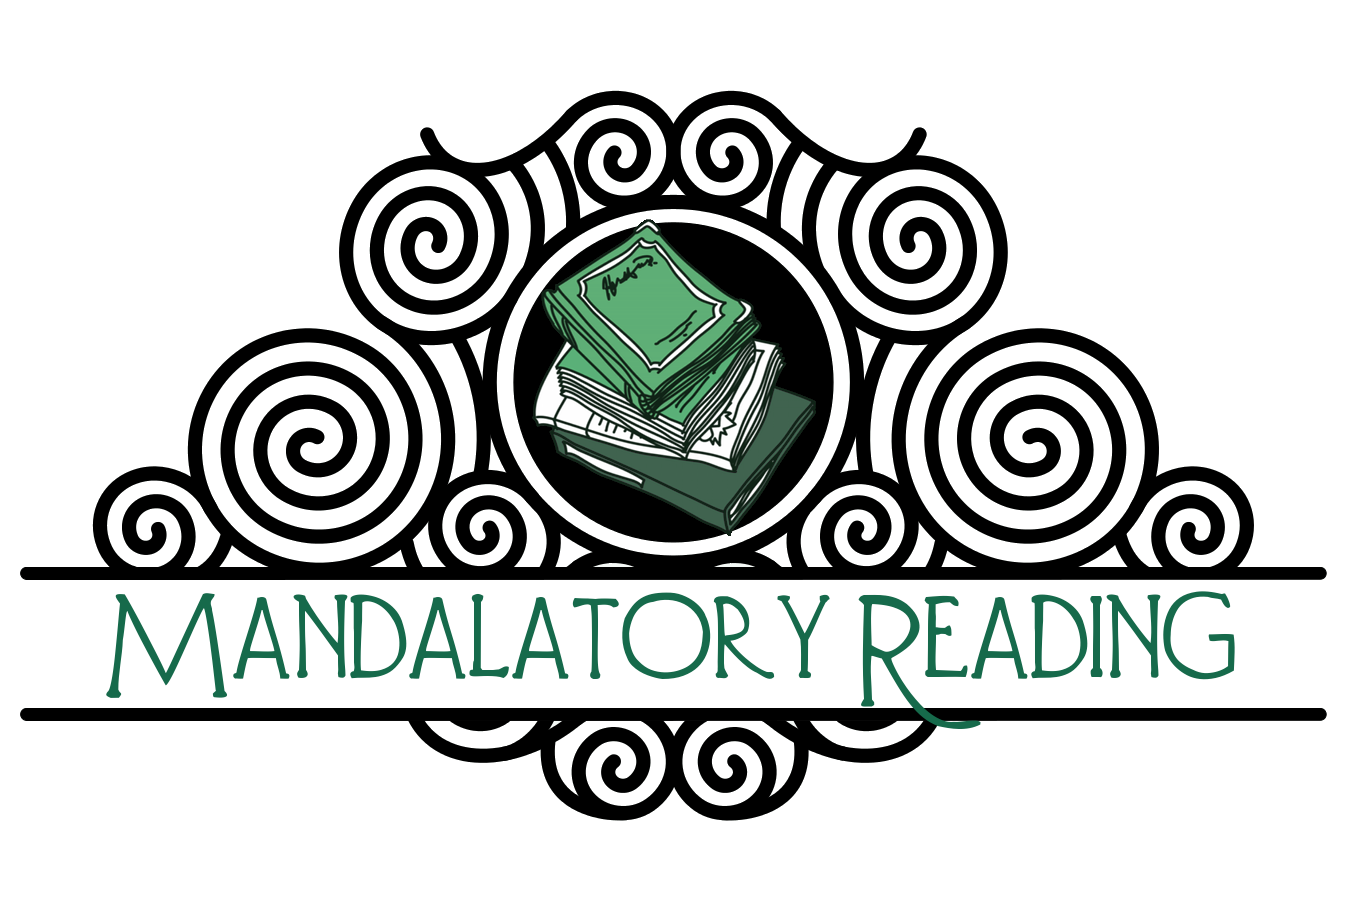 Mandalatory Reading